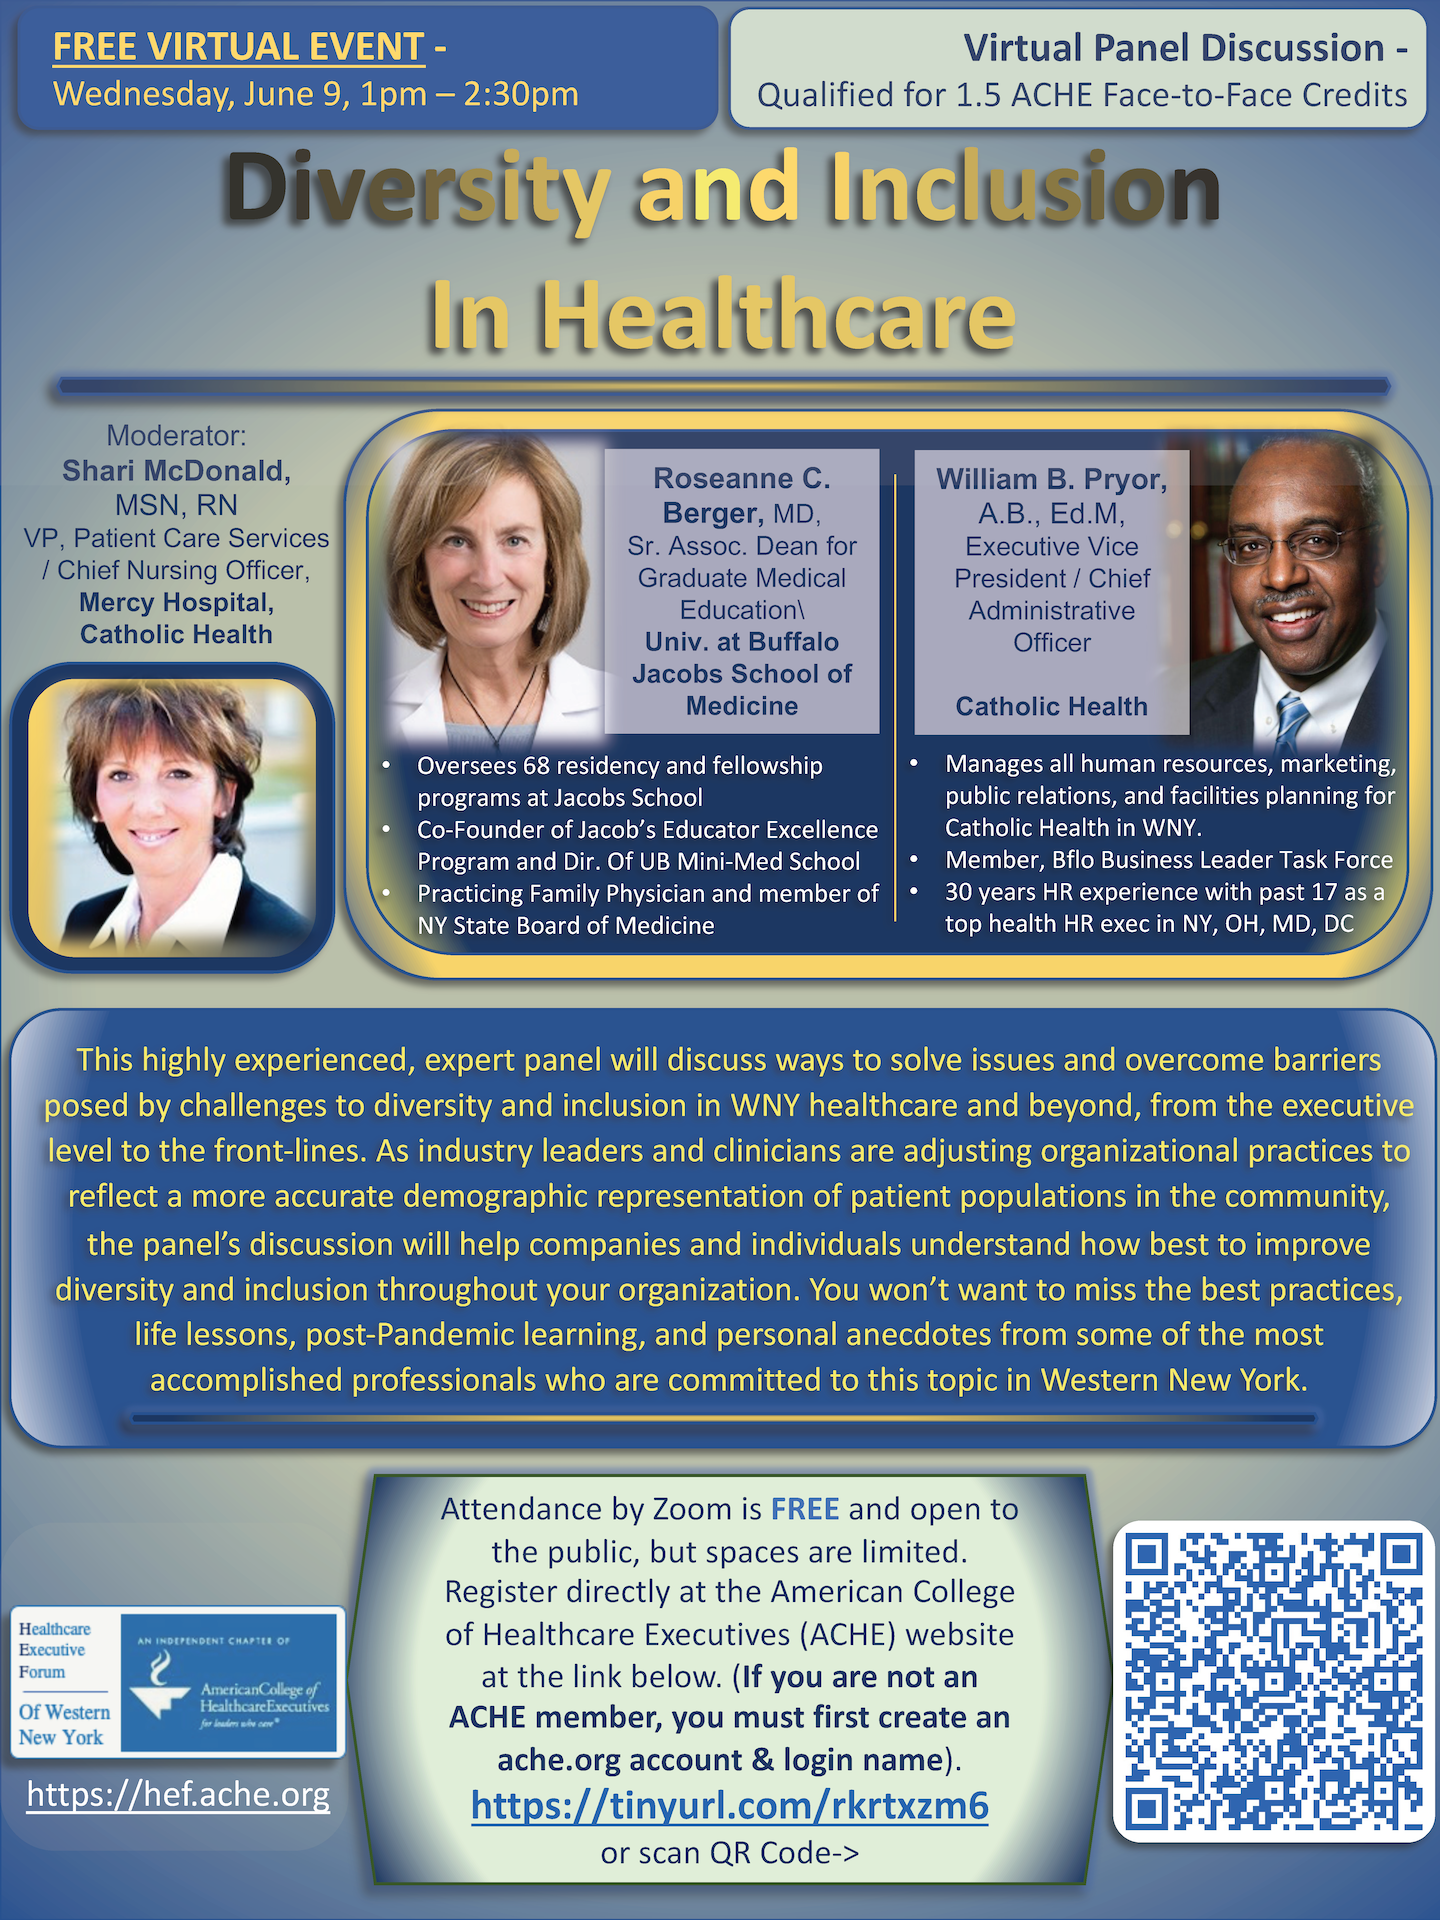 Diversity and Inclusion in Healthcare